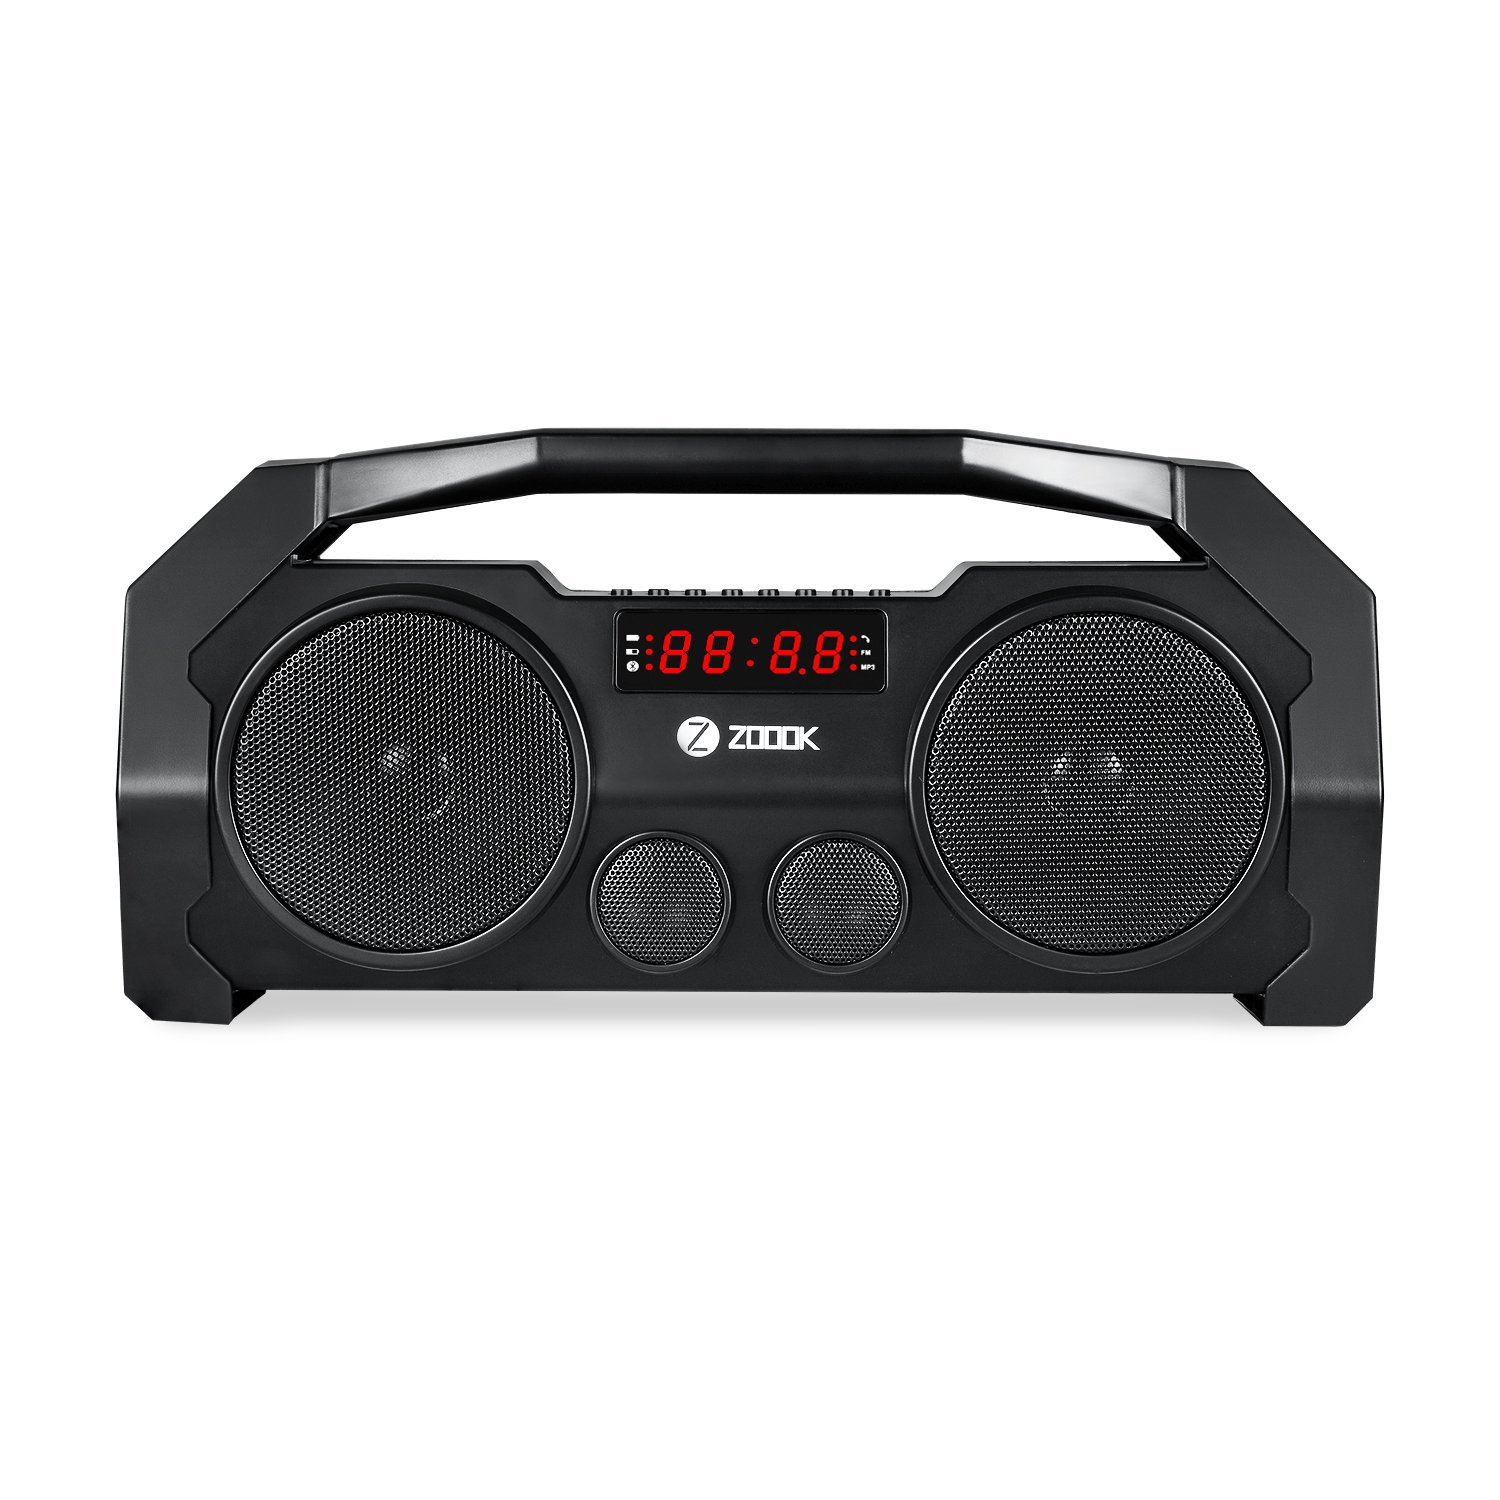 Zoook Rocker Boombox+ 32W Bluetooth Speaker with